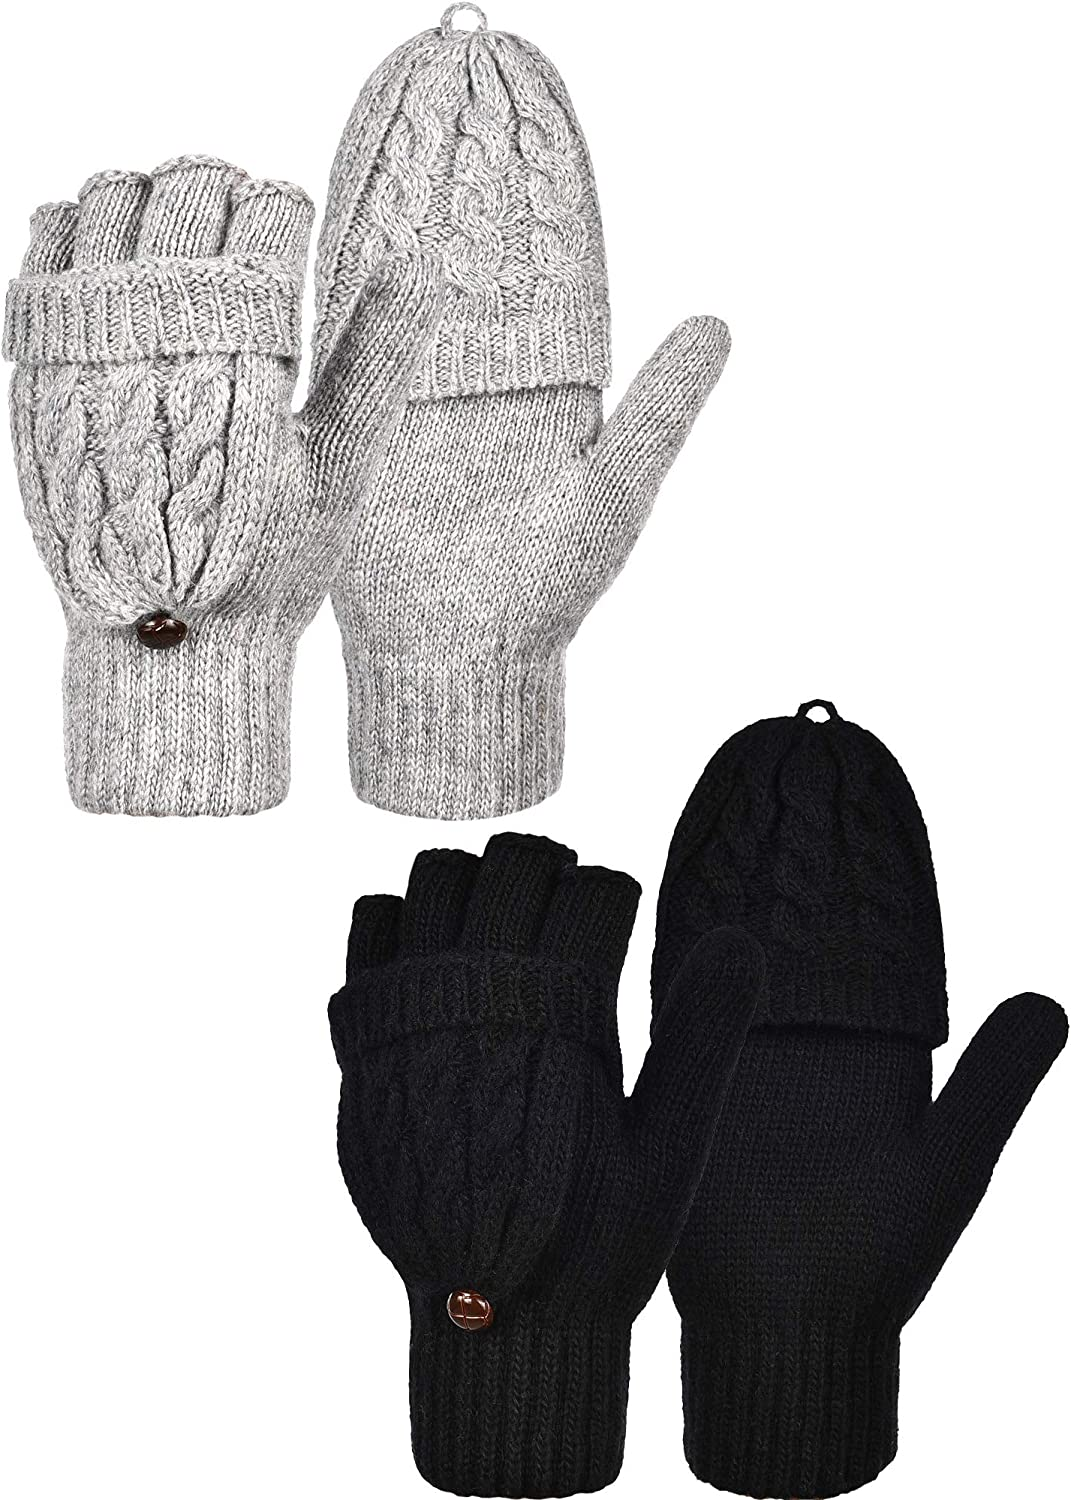 2 Pairs Women's Winter Fingerless Gloves Winter Knitted Mittens Convertible Gloves with Buttoned Thumb Cover (Style Set 1)